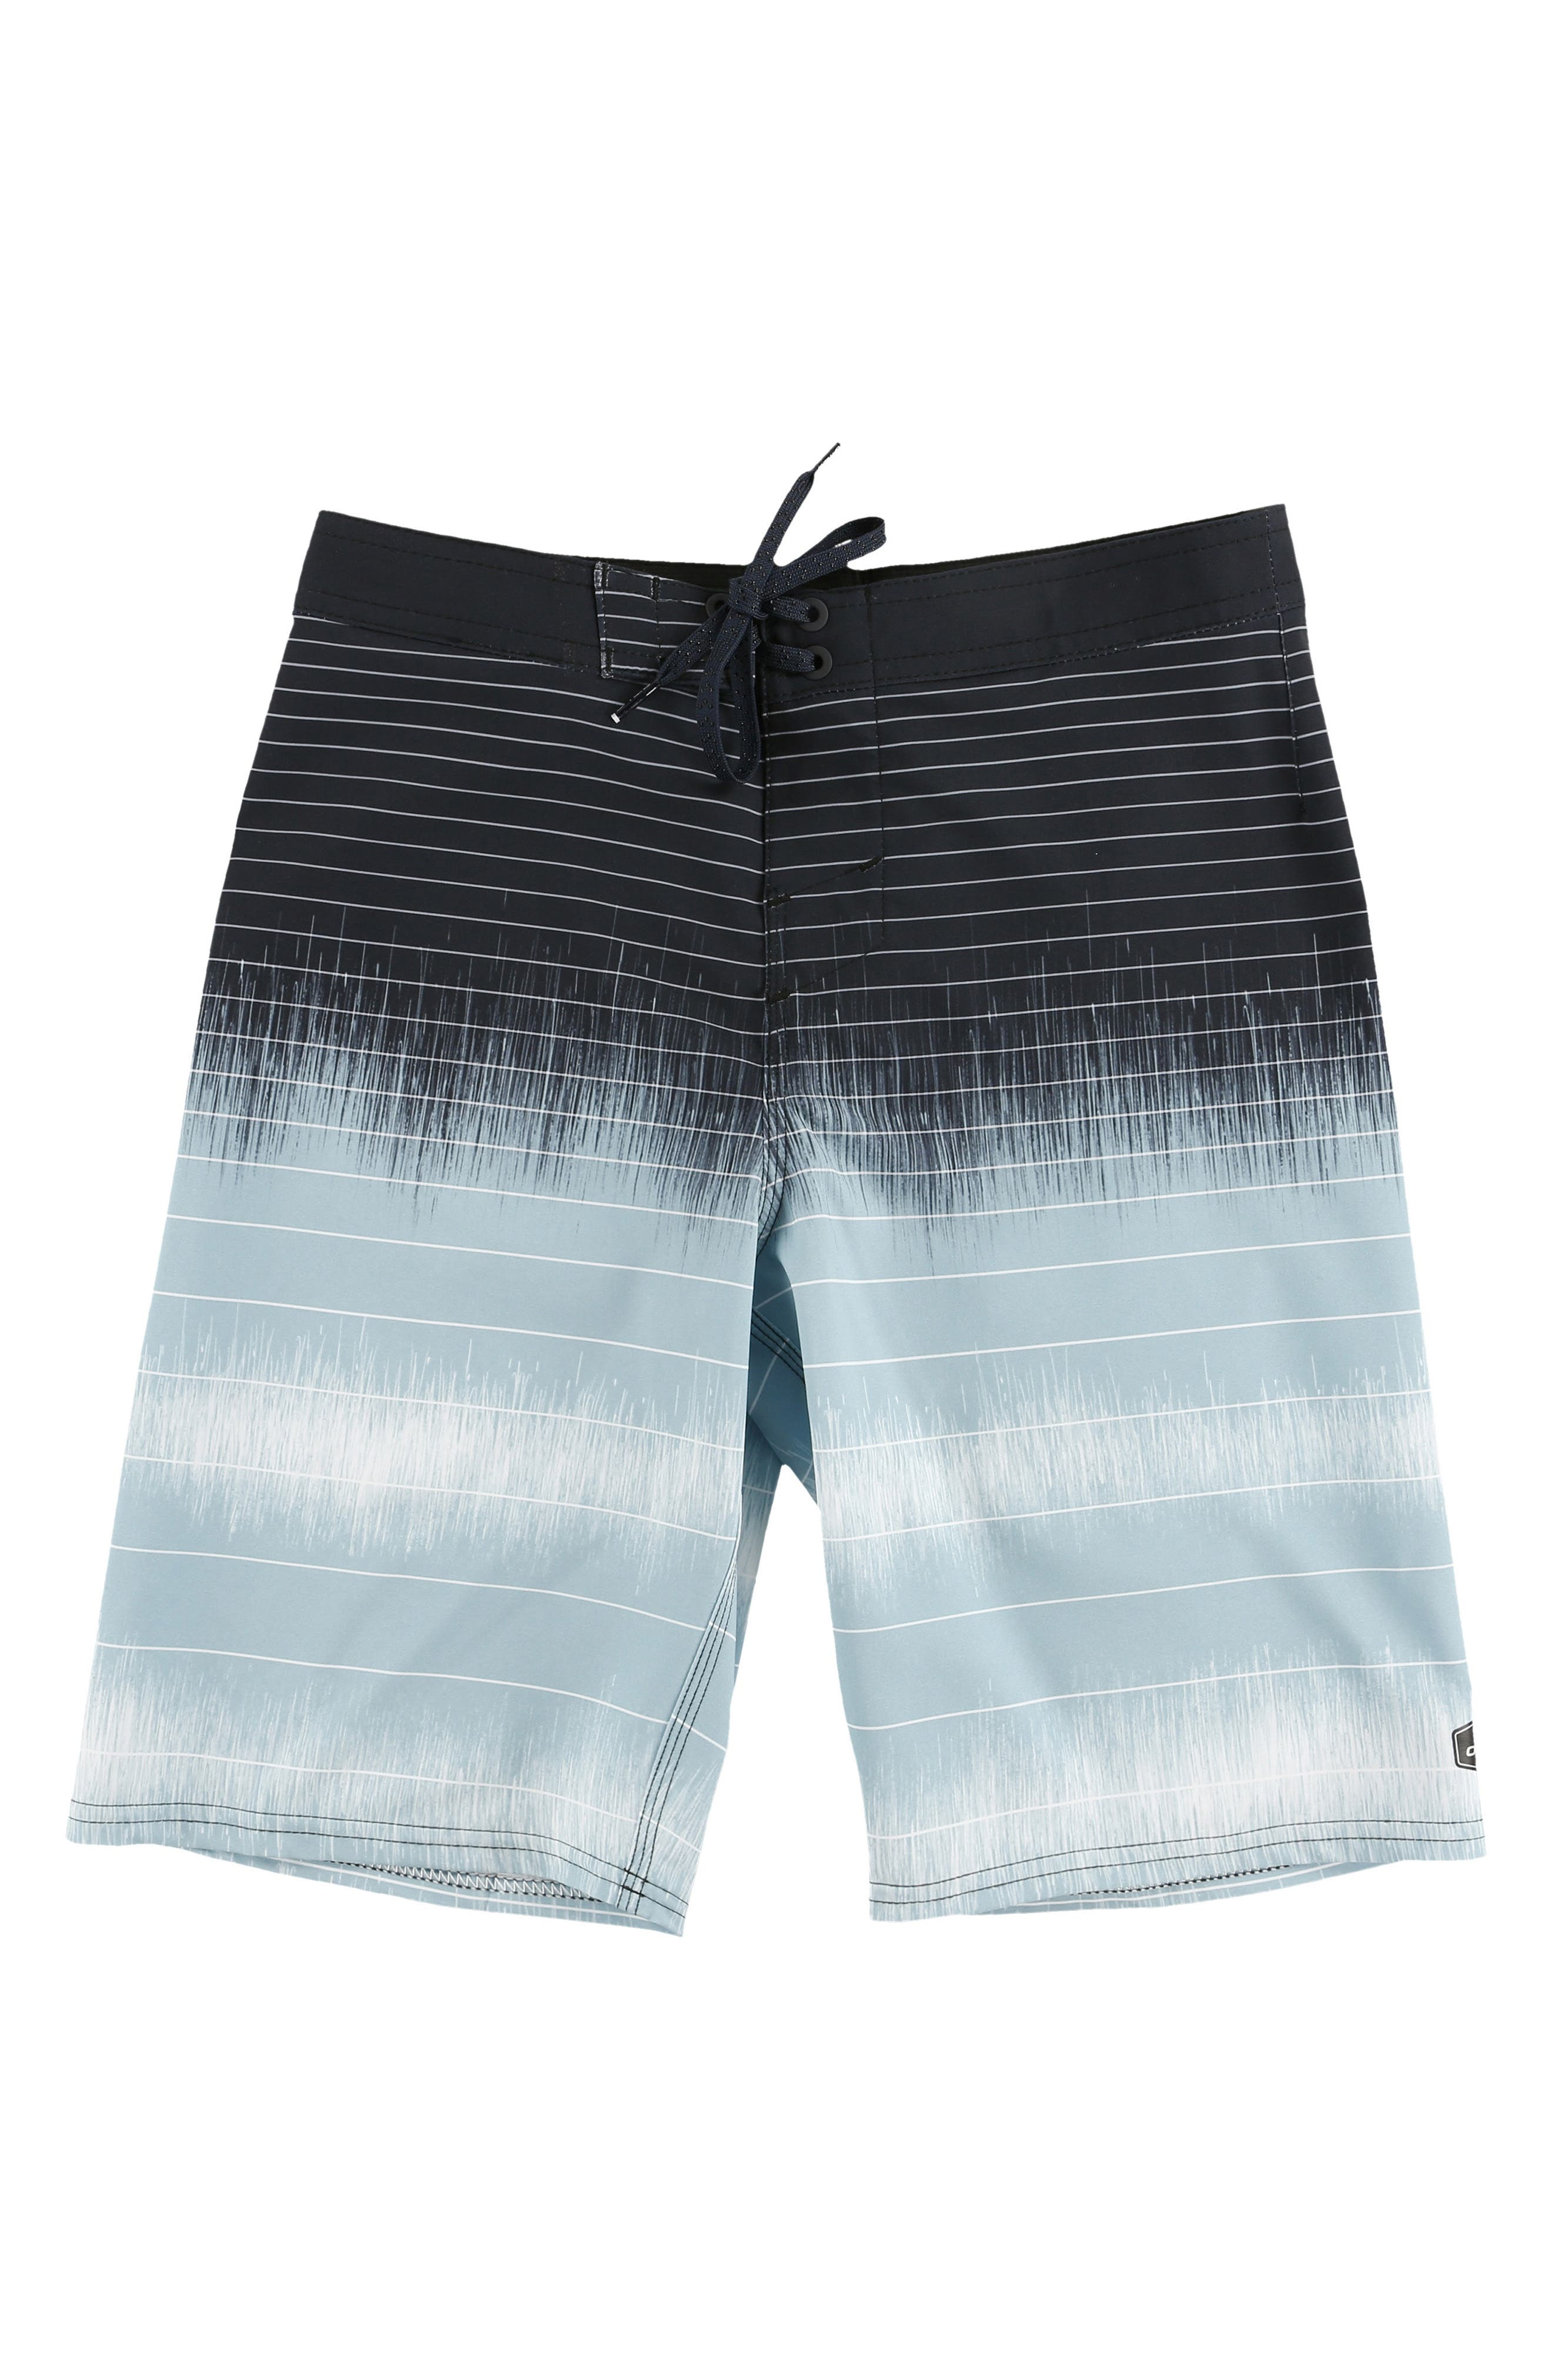 Hyperfreak Seismic Board Shorts,                         Main,                         color, DARK NAVY